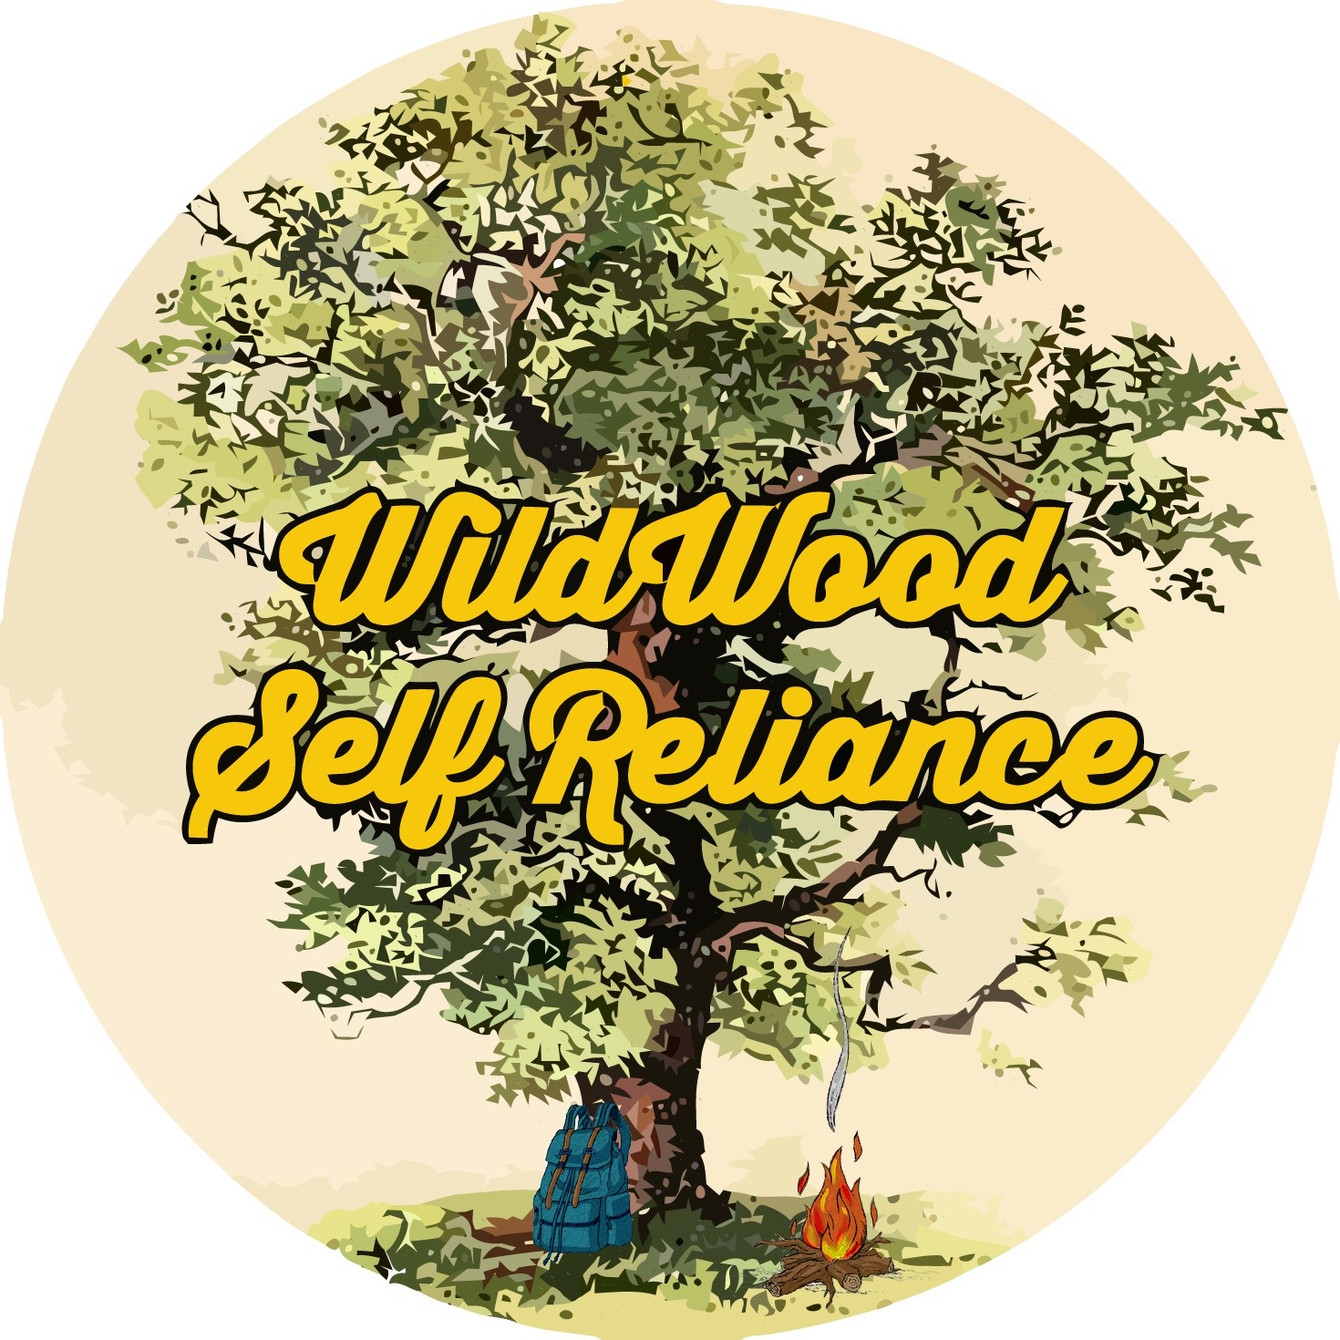 WildWood Self-Reliance